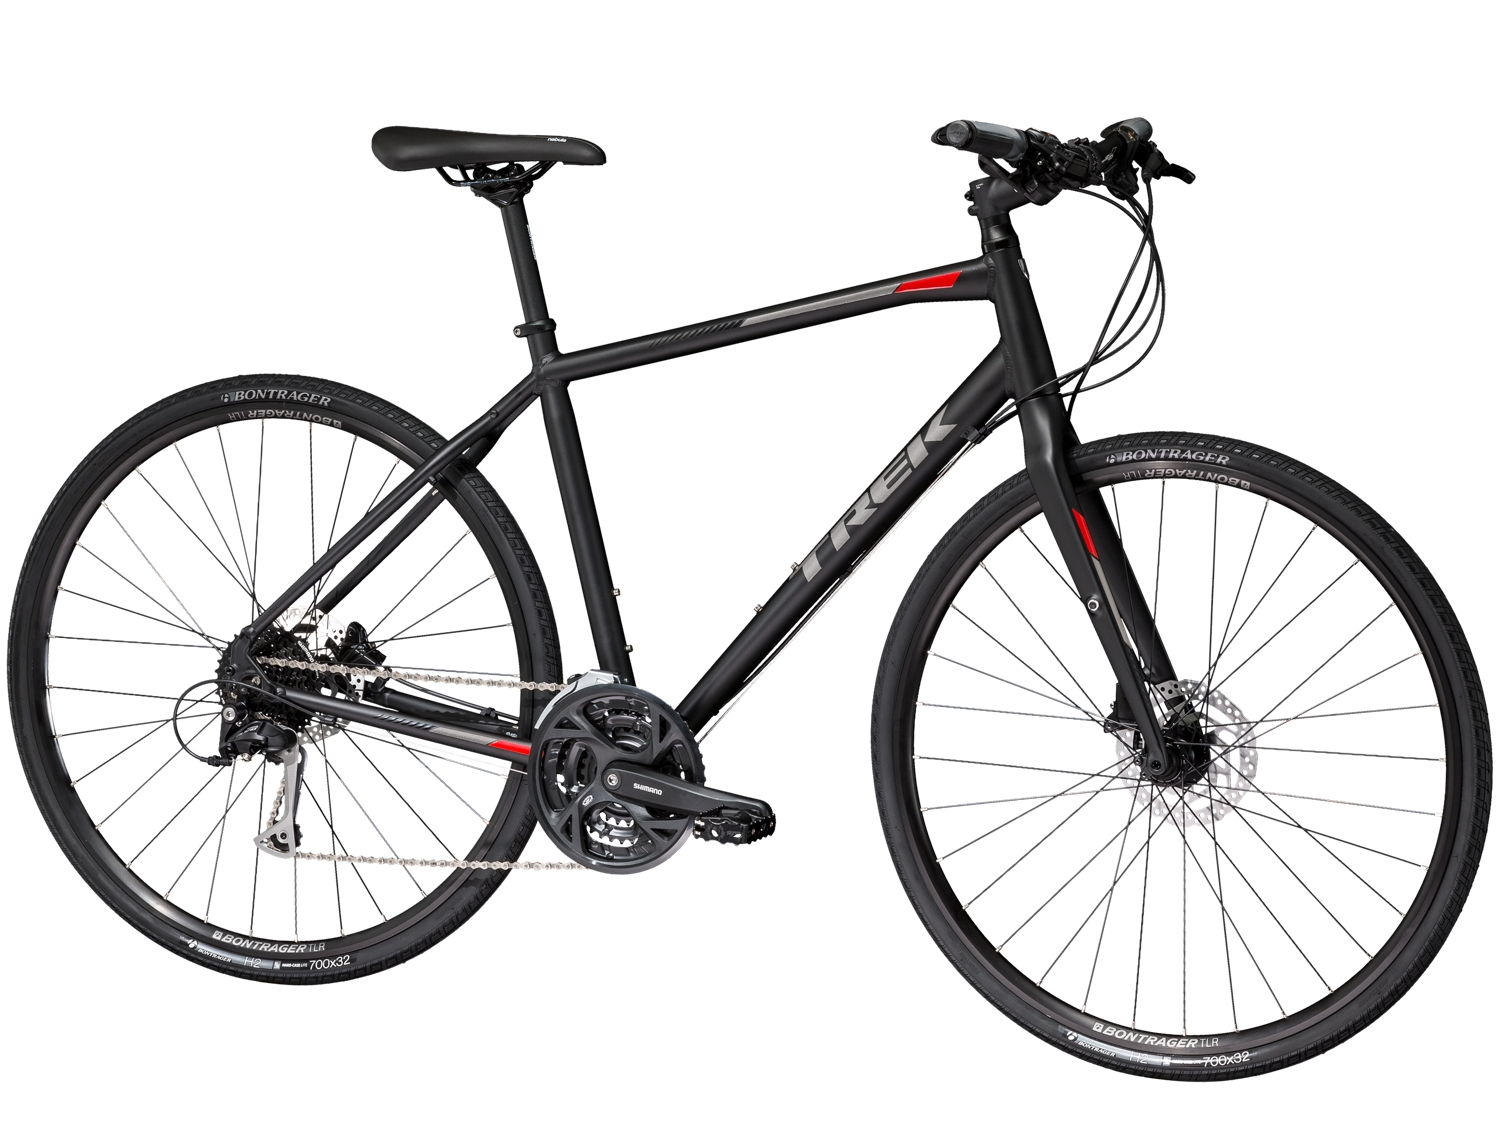 Trek Fx 3 Disc 2019 Hybrid Bike Black £520.00